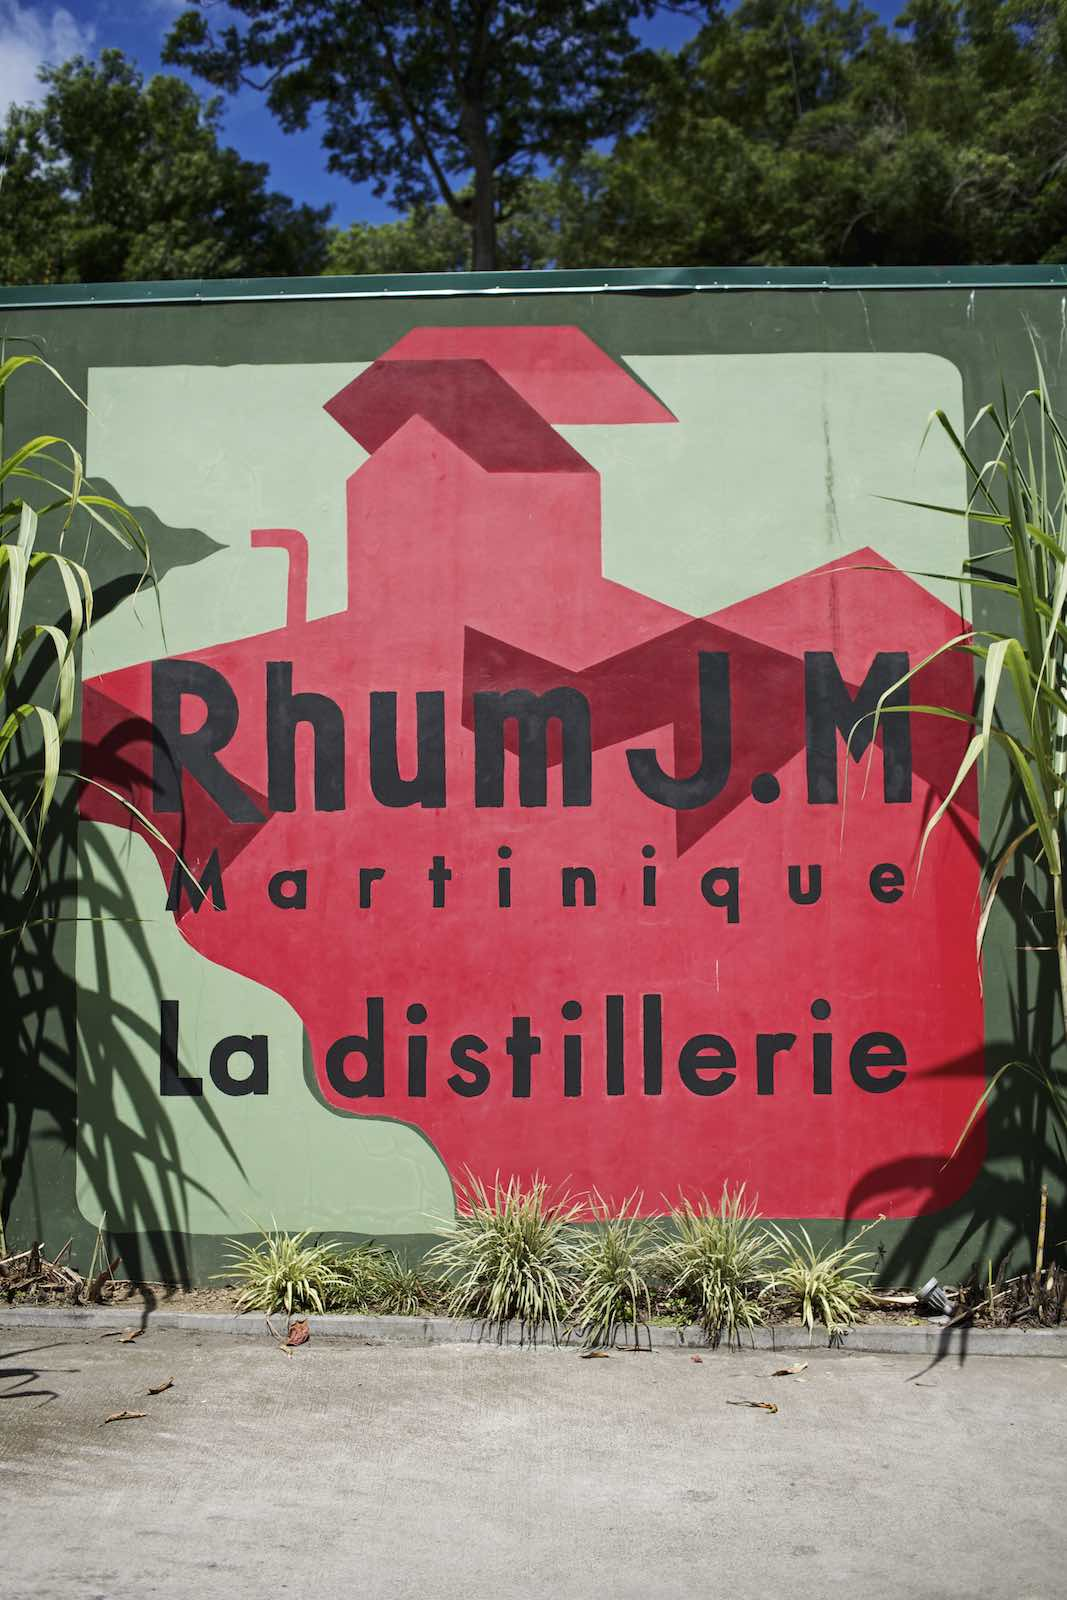 Jody Horton Photography - A rum distillery